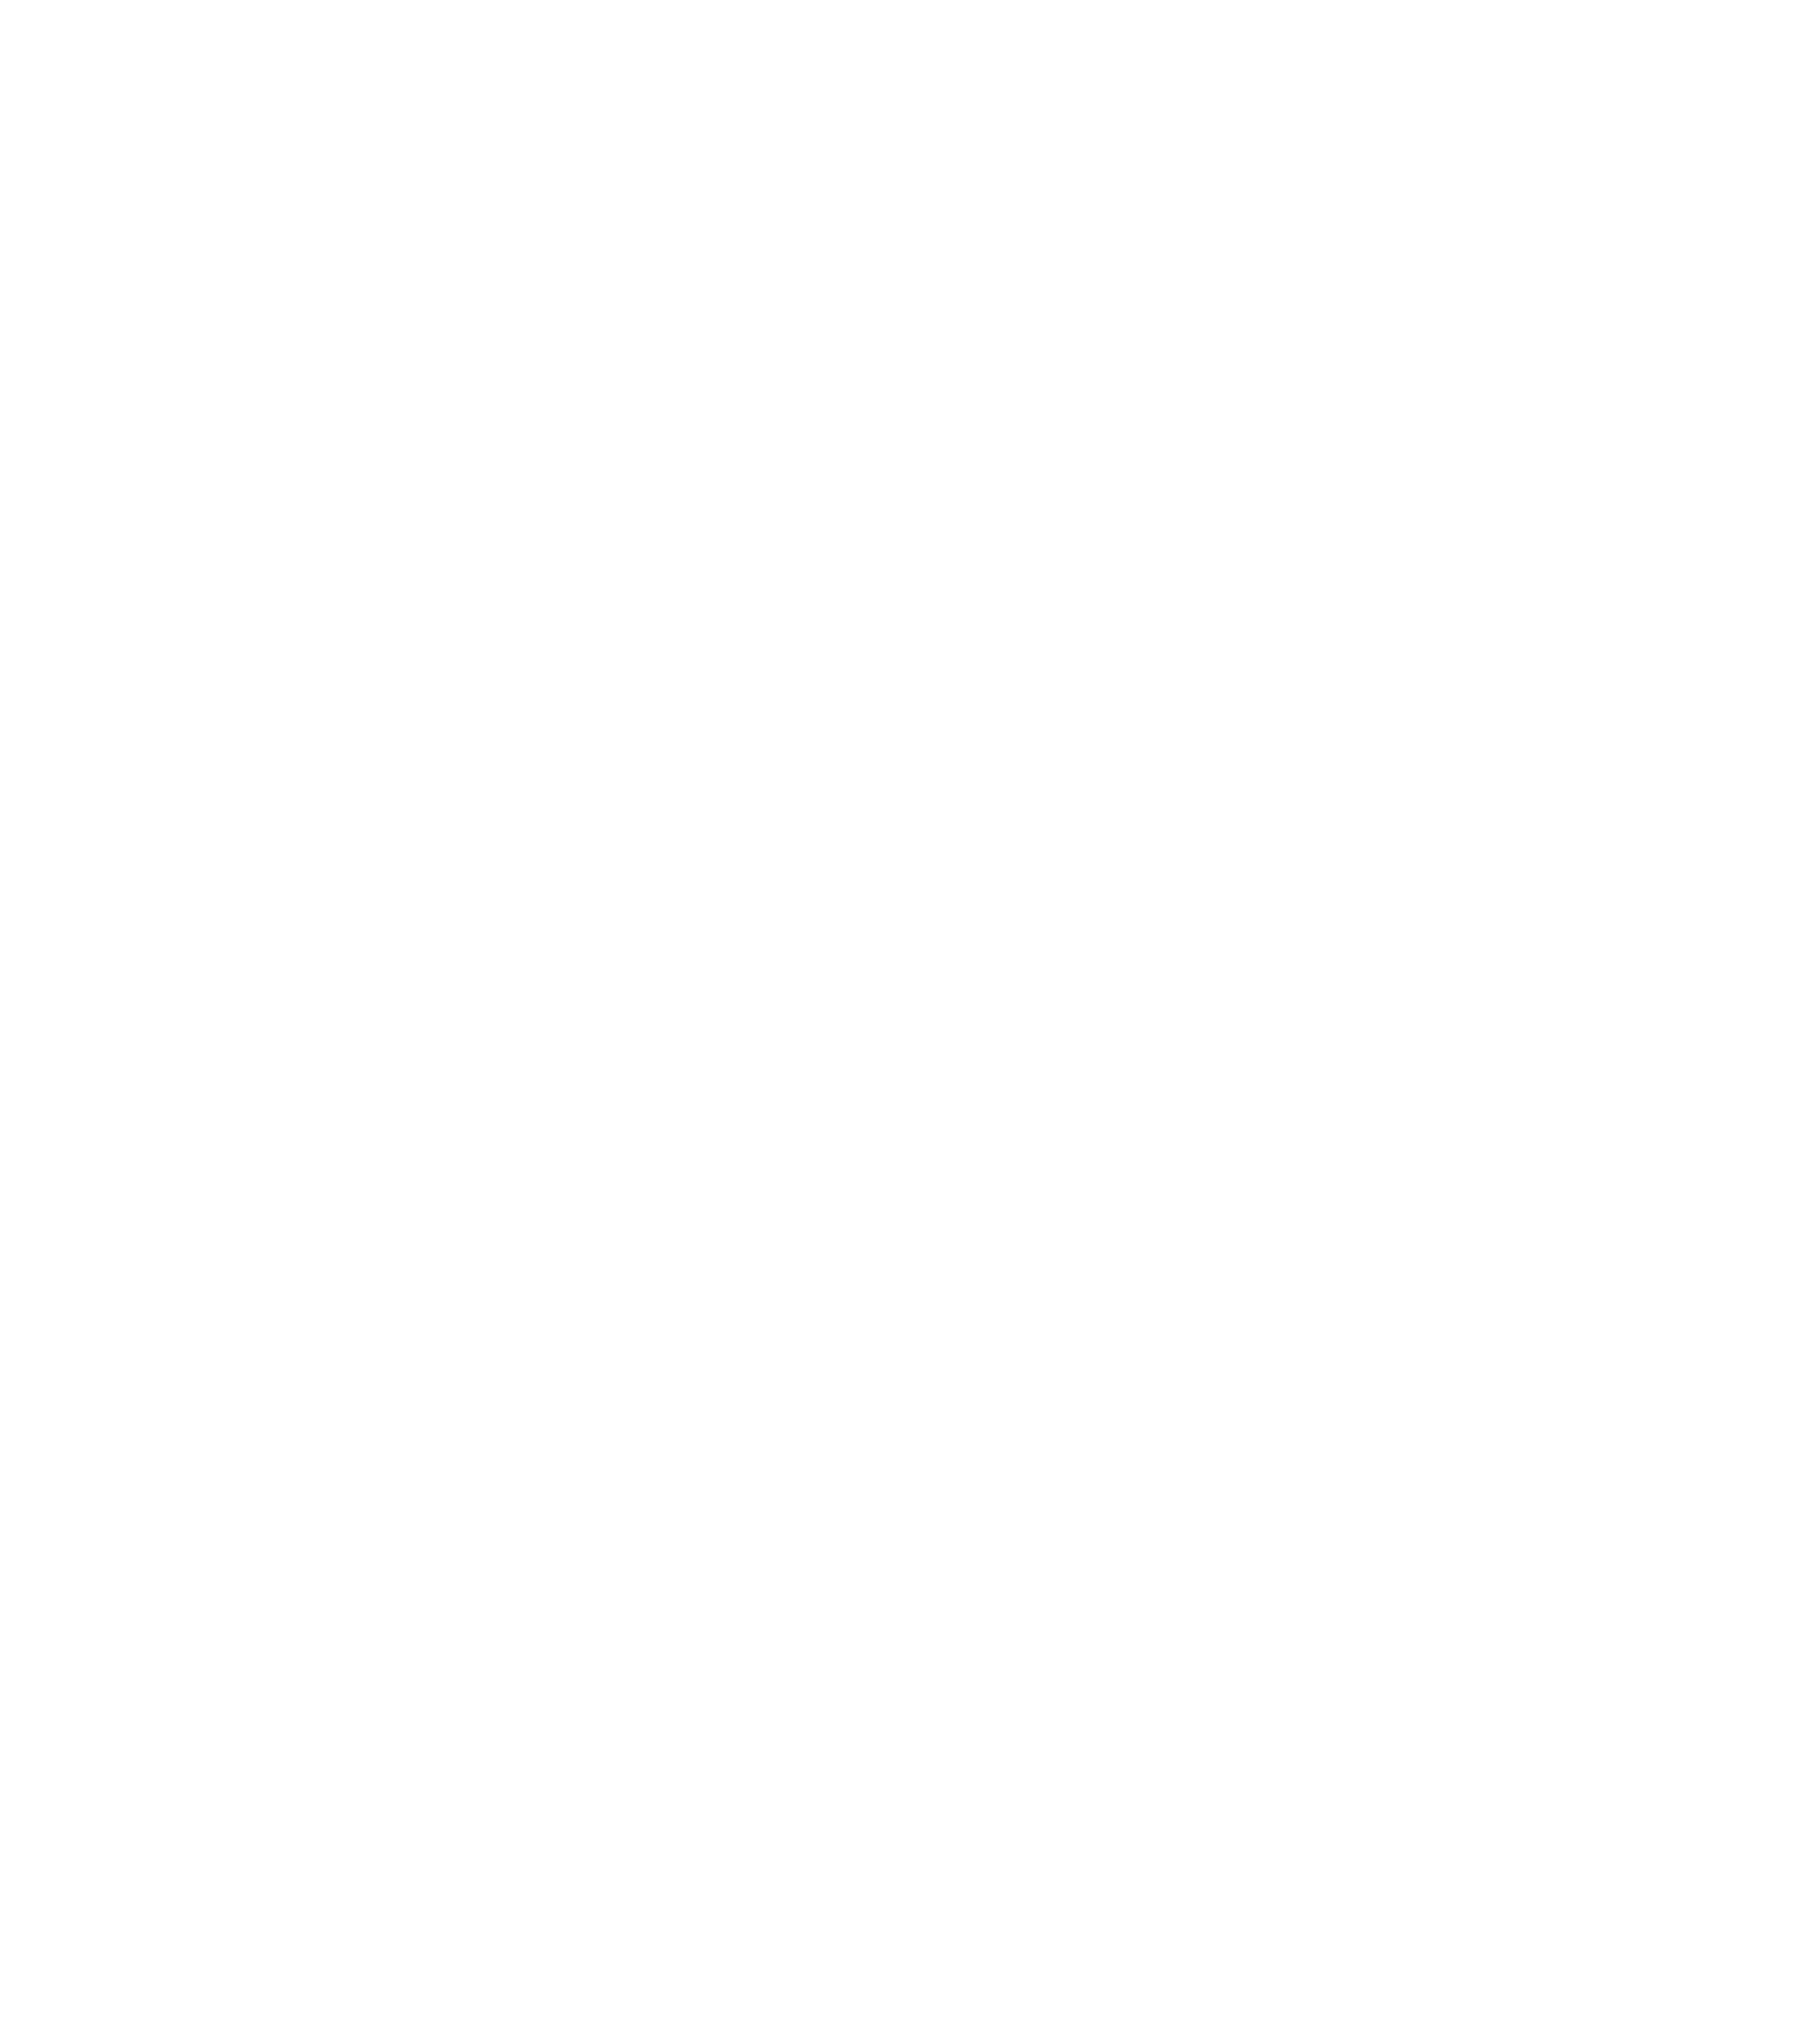 Aaron Fung Photo